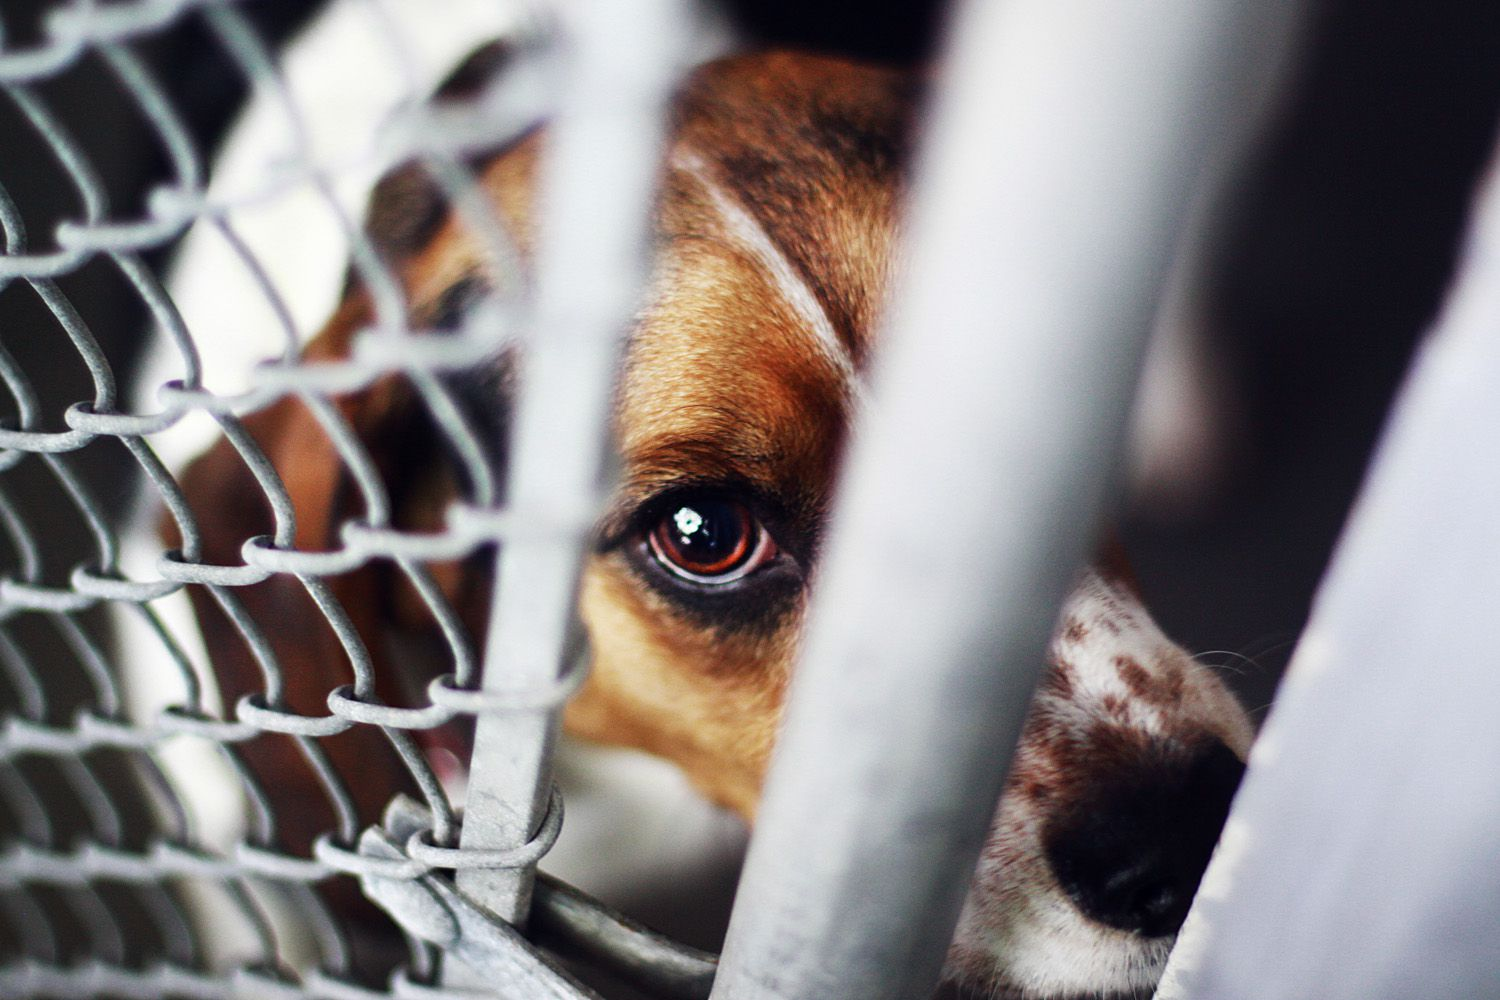 the major issue of cruelty to animals